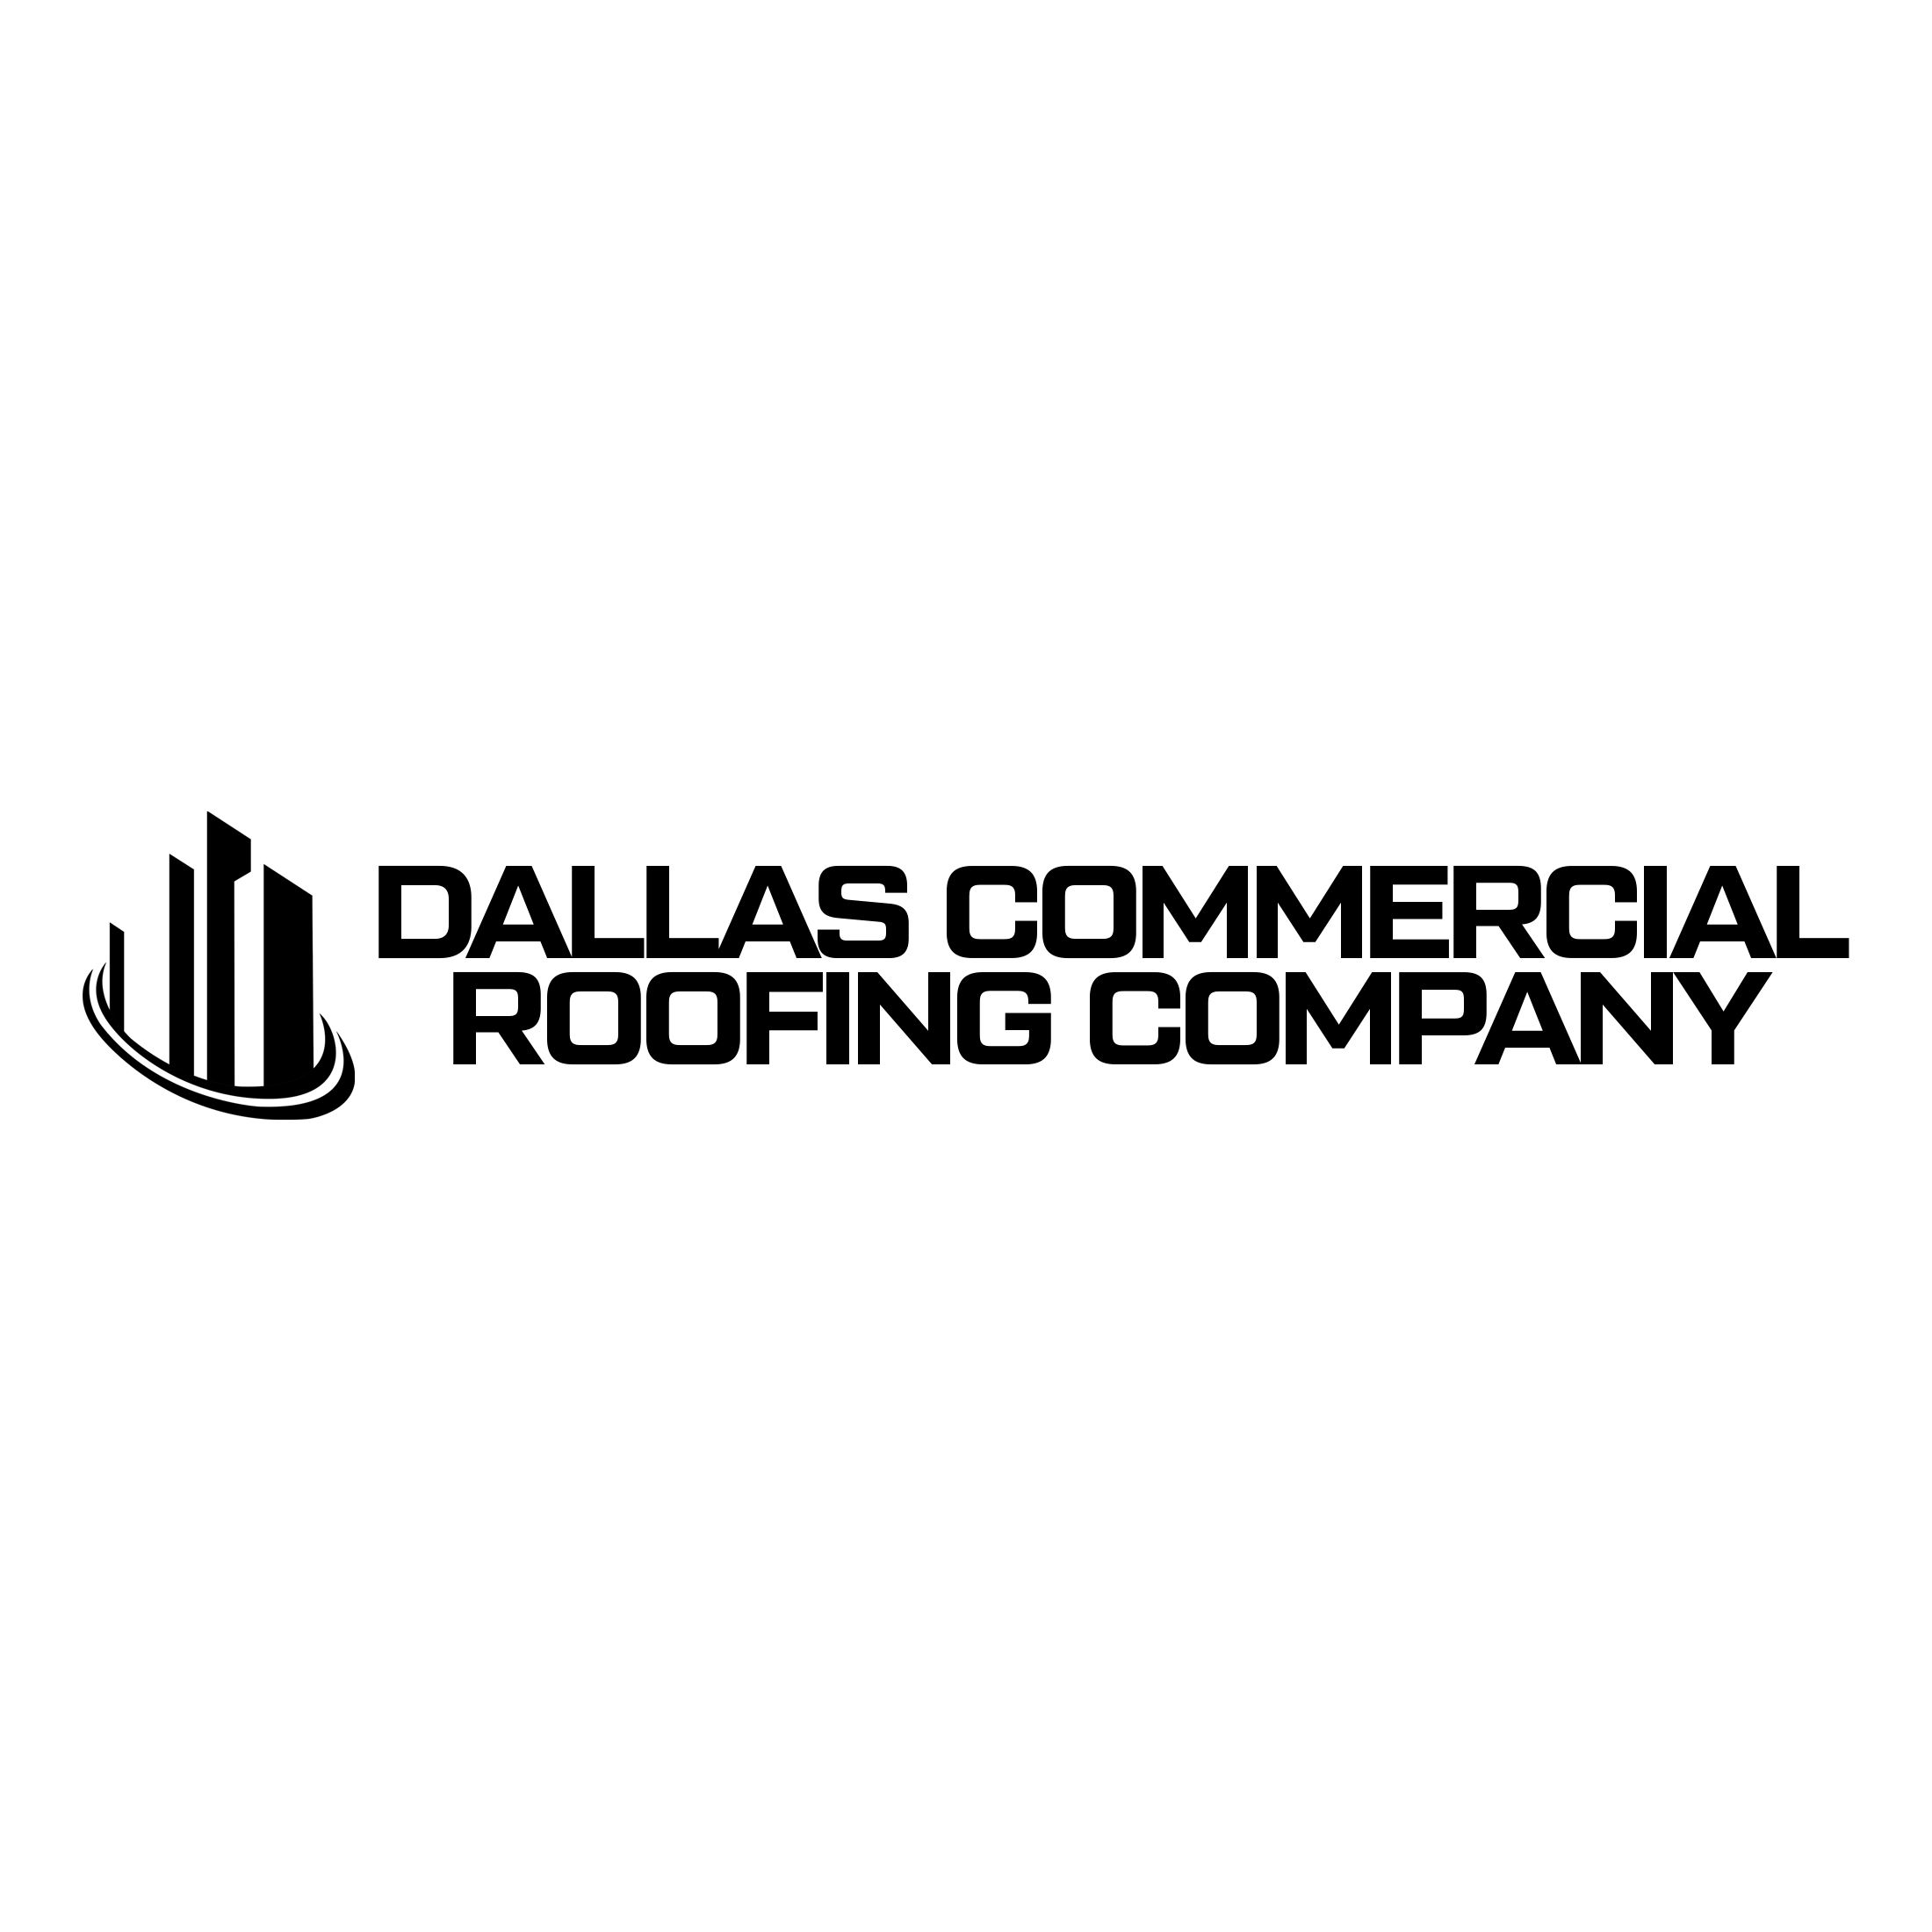 Dallas Commercial Roofing Company has Received a 5-Star Rating for Quality and Reliable Commercial Roofing Services 6